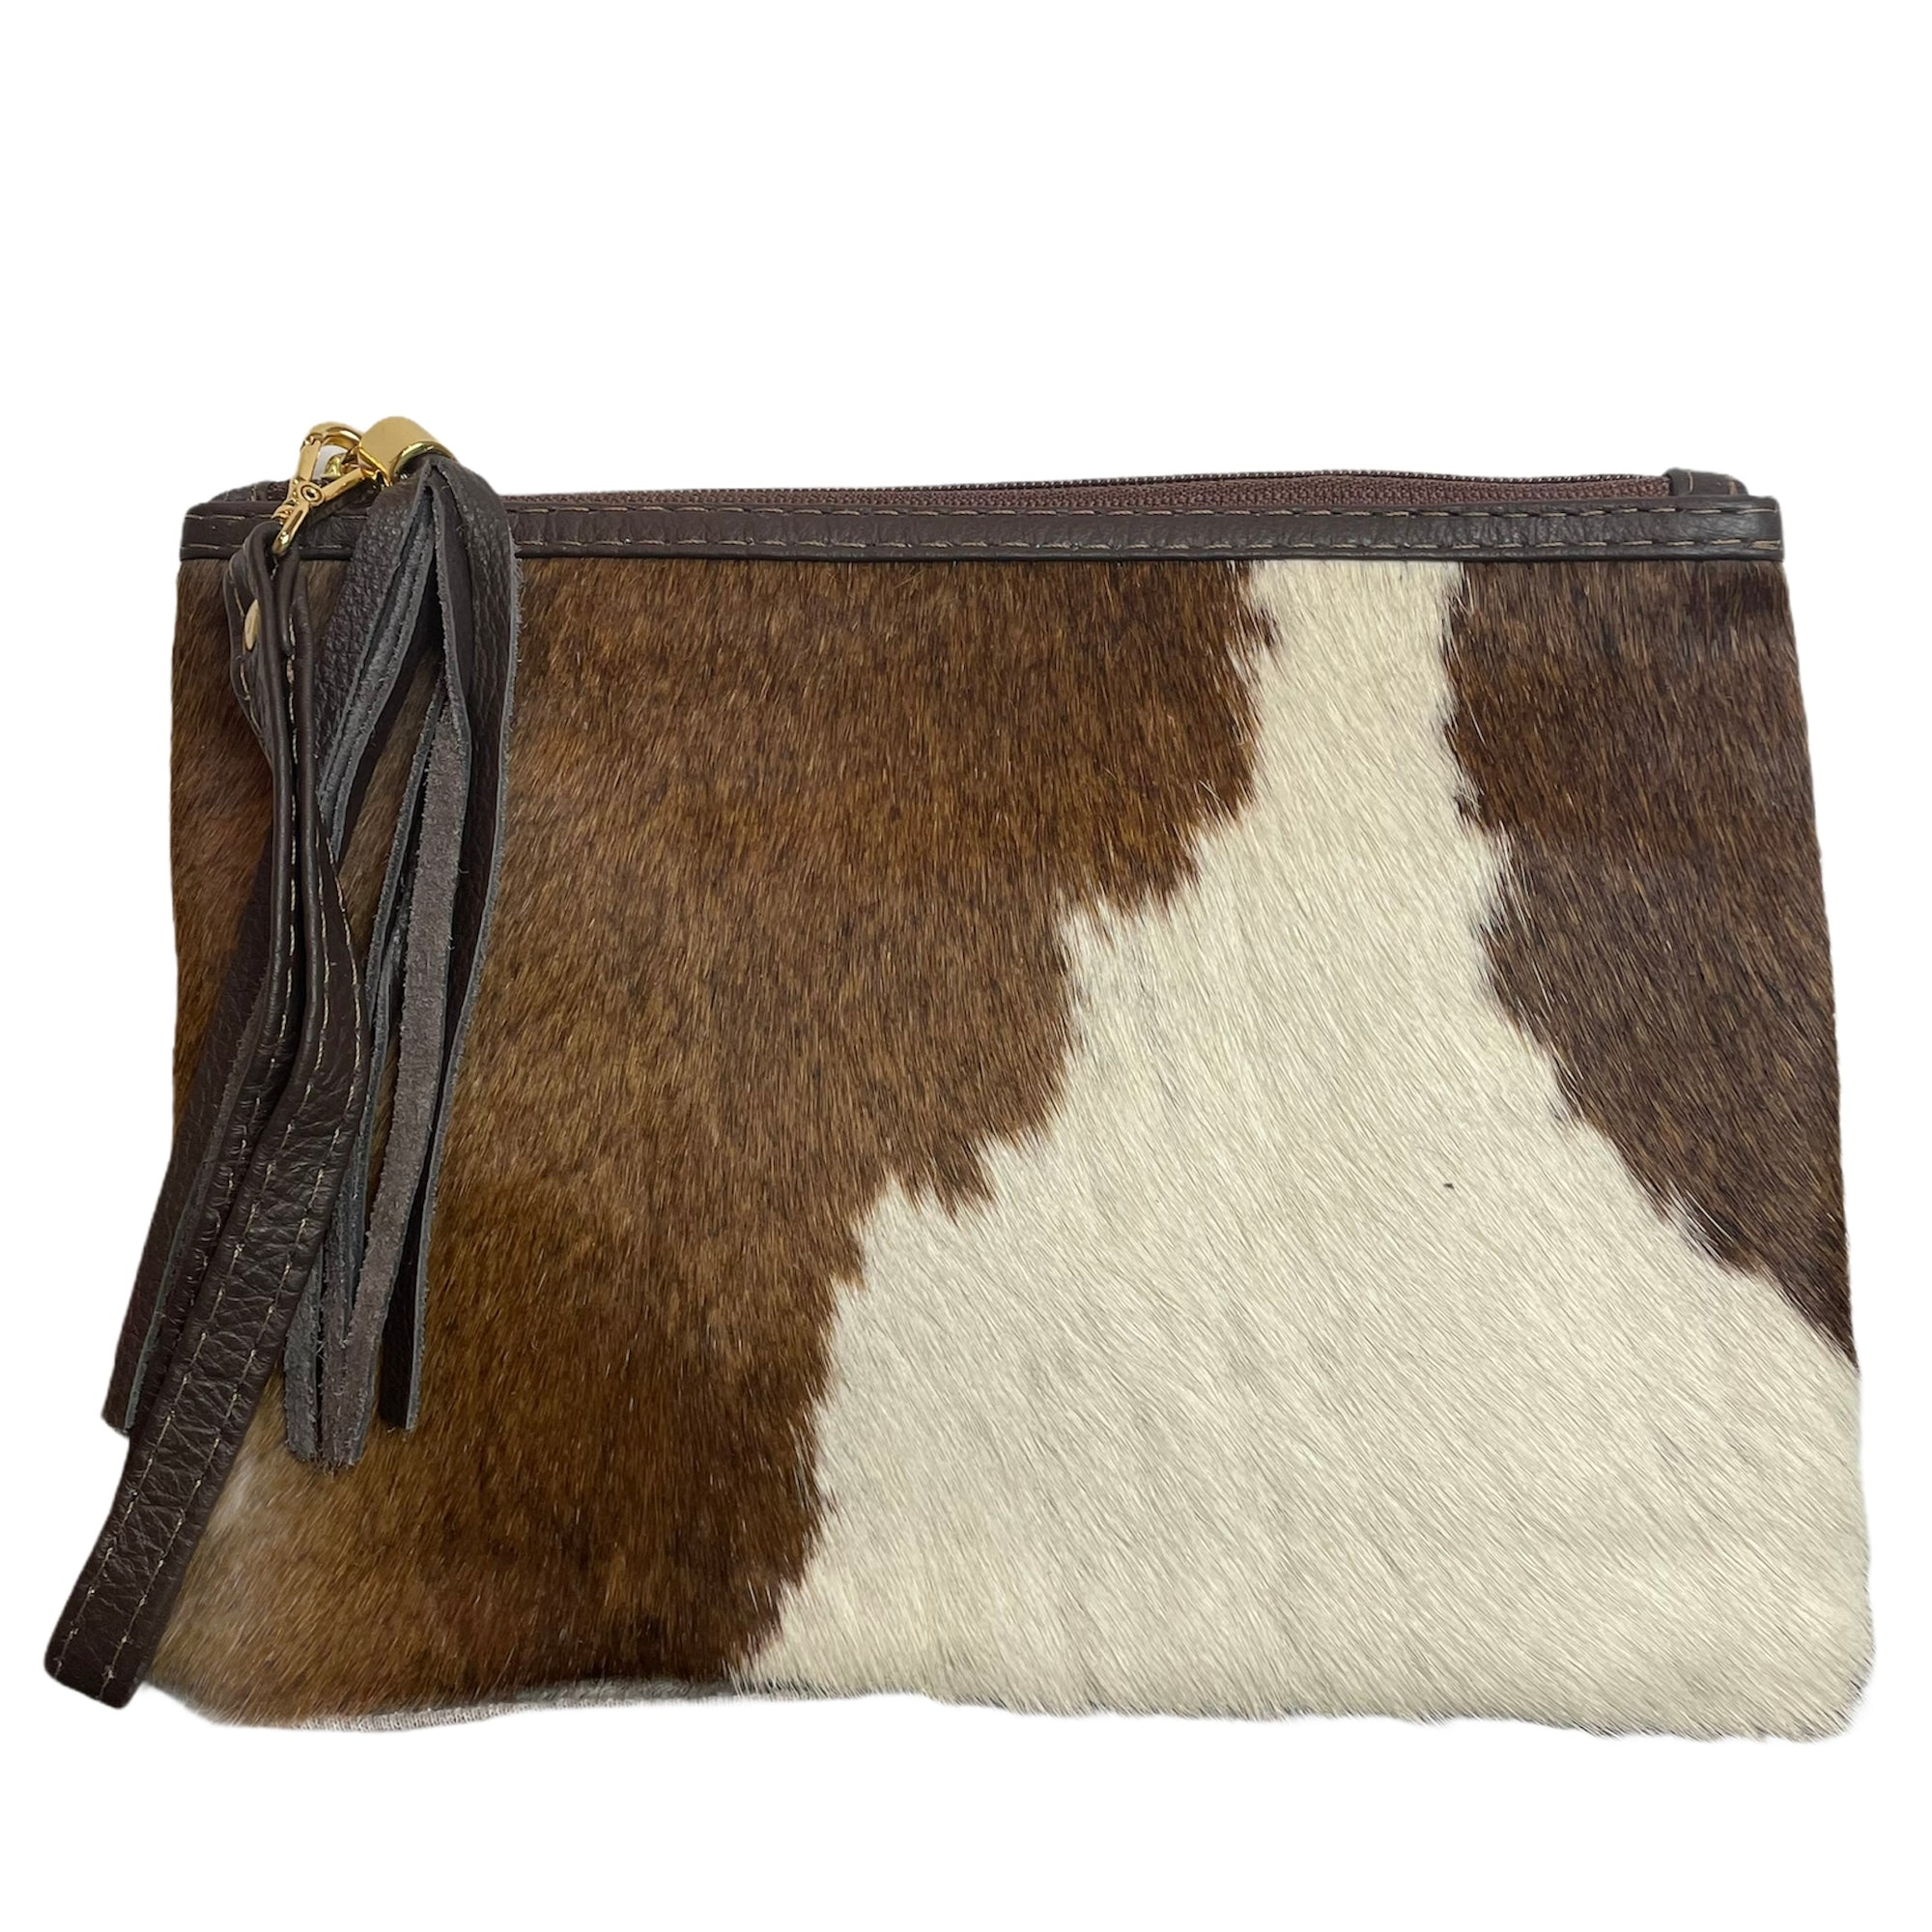 COWHIDE EVERYDAY SMALL CLUTCH - BROWN + WHITE. Izel Designs